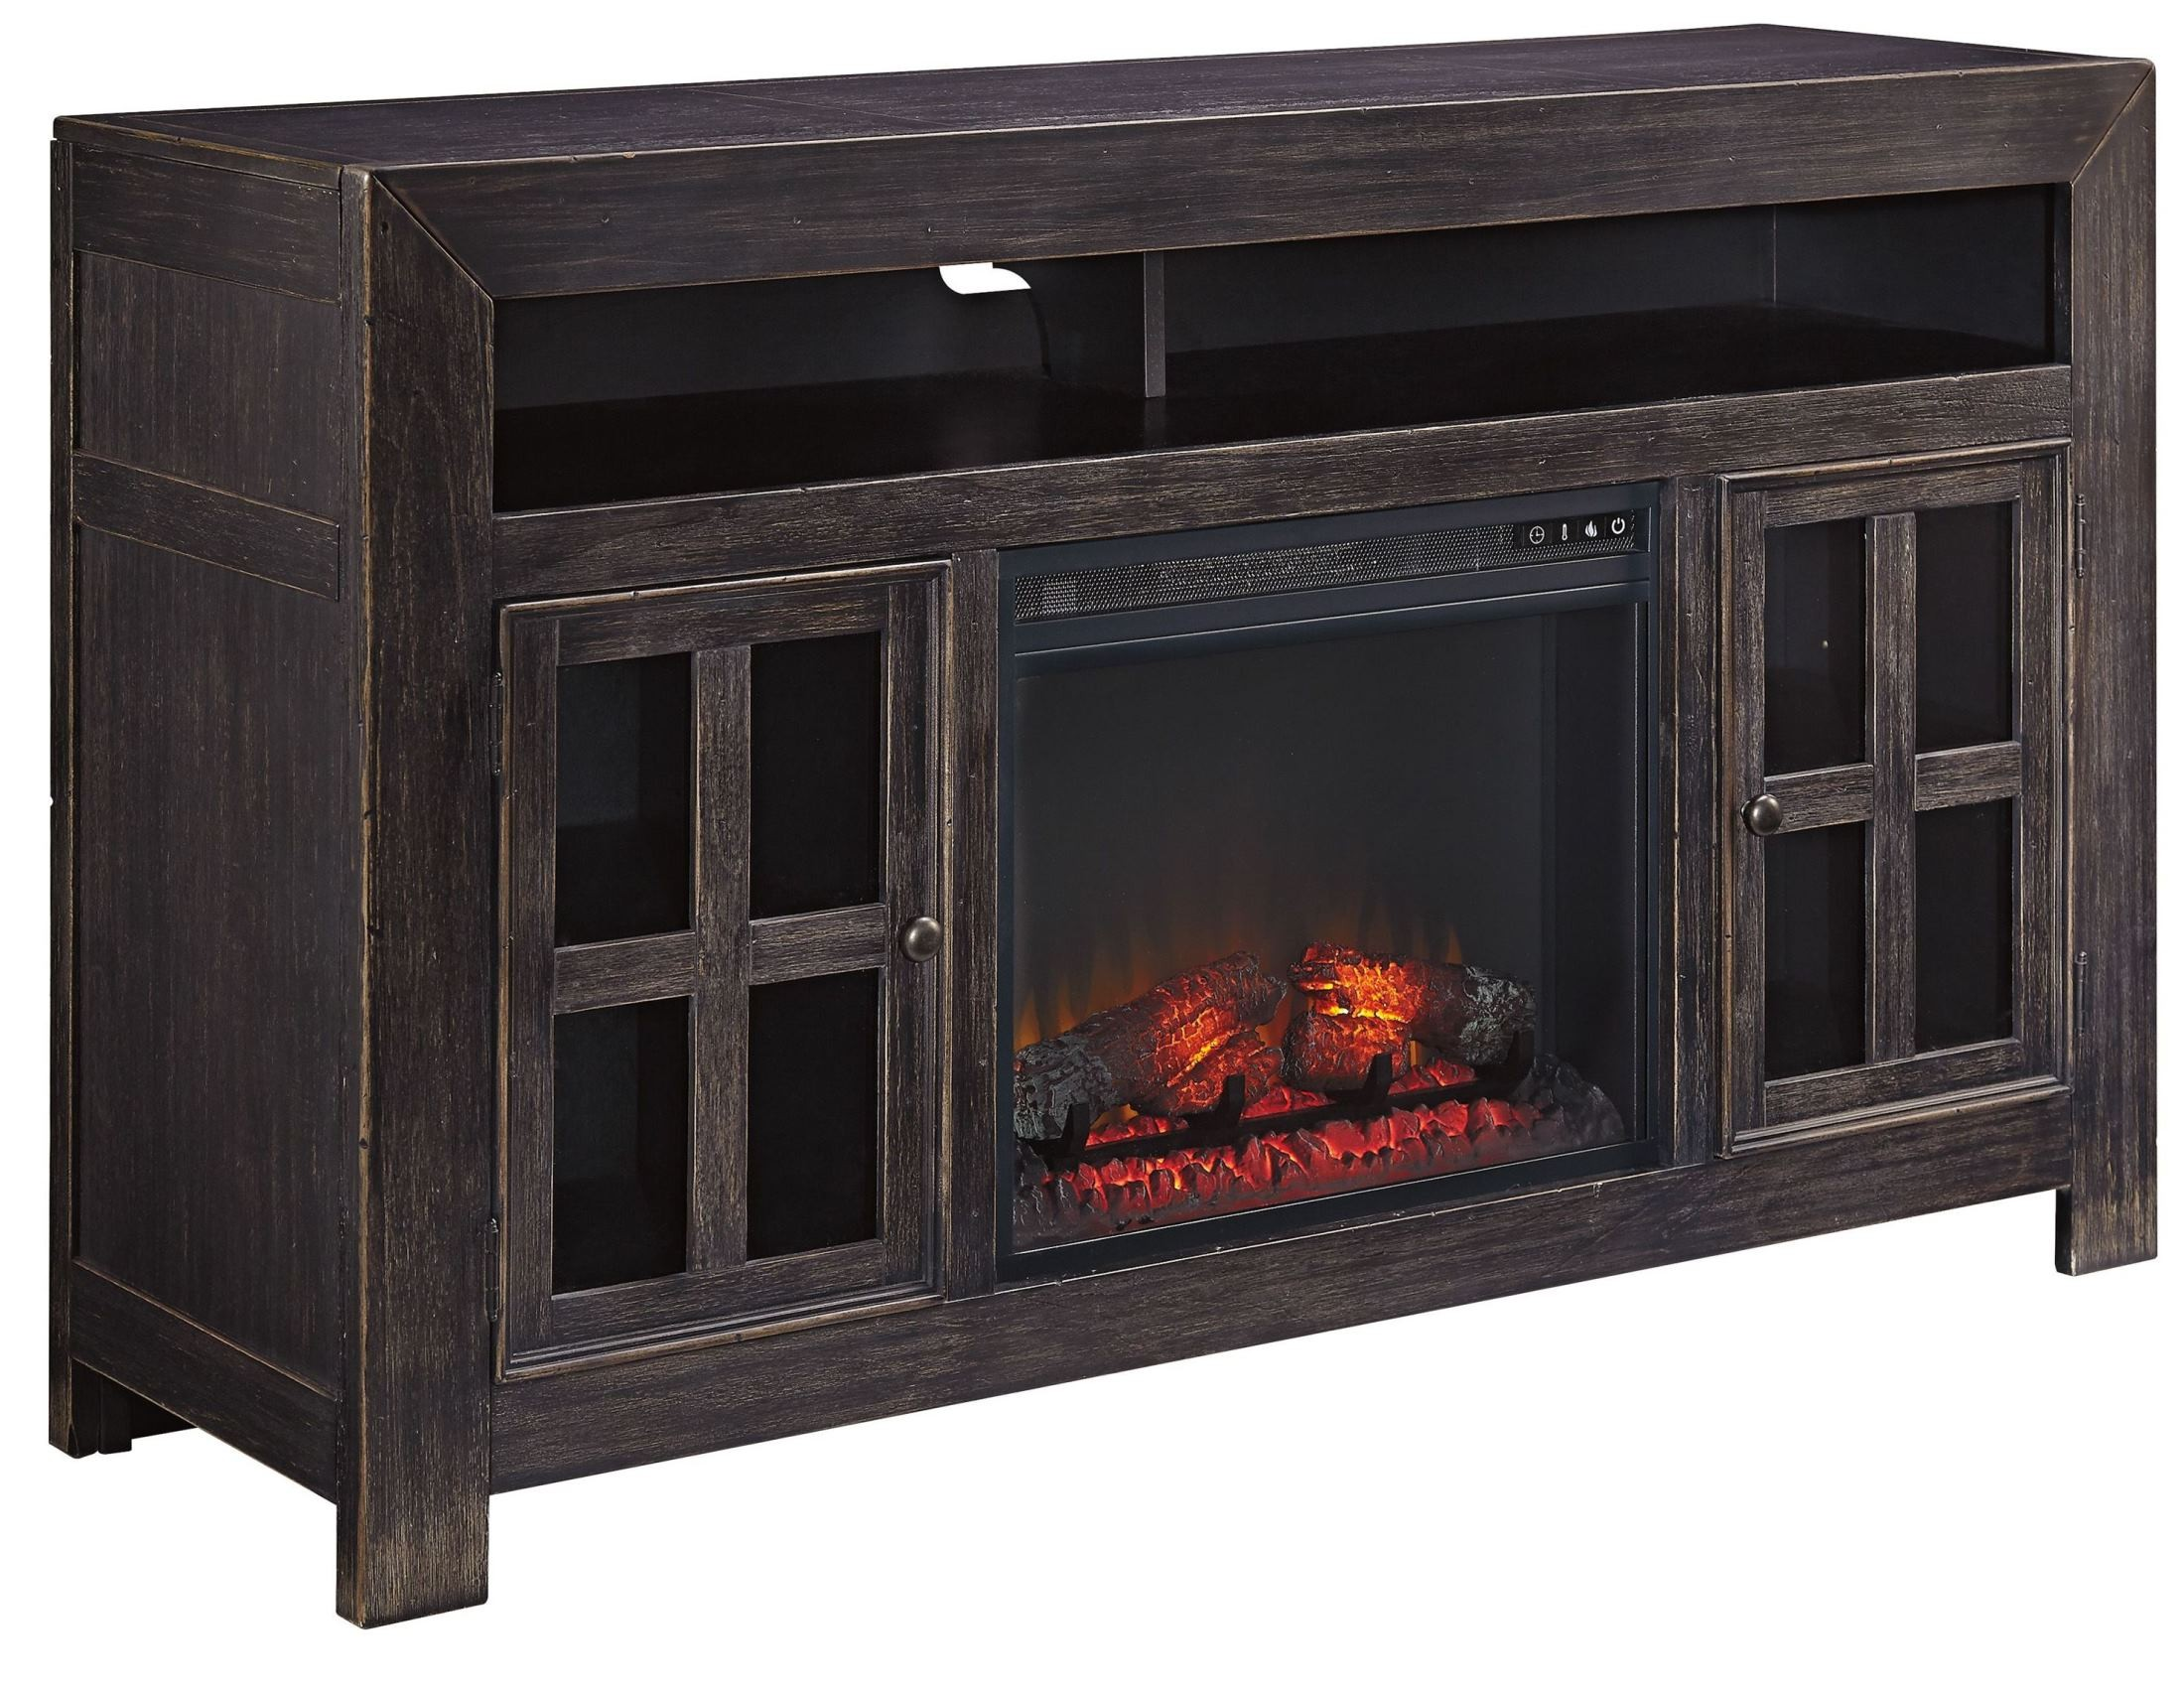 Gavelston lg tv stand with glass stone fireplace insert for Fireplace insert options